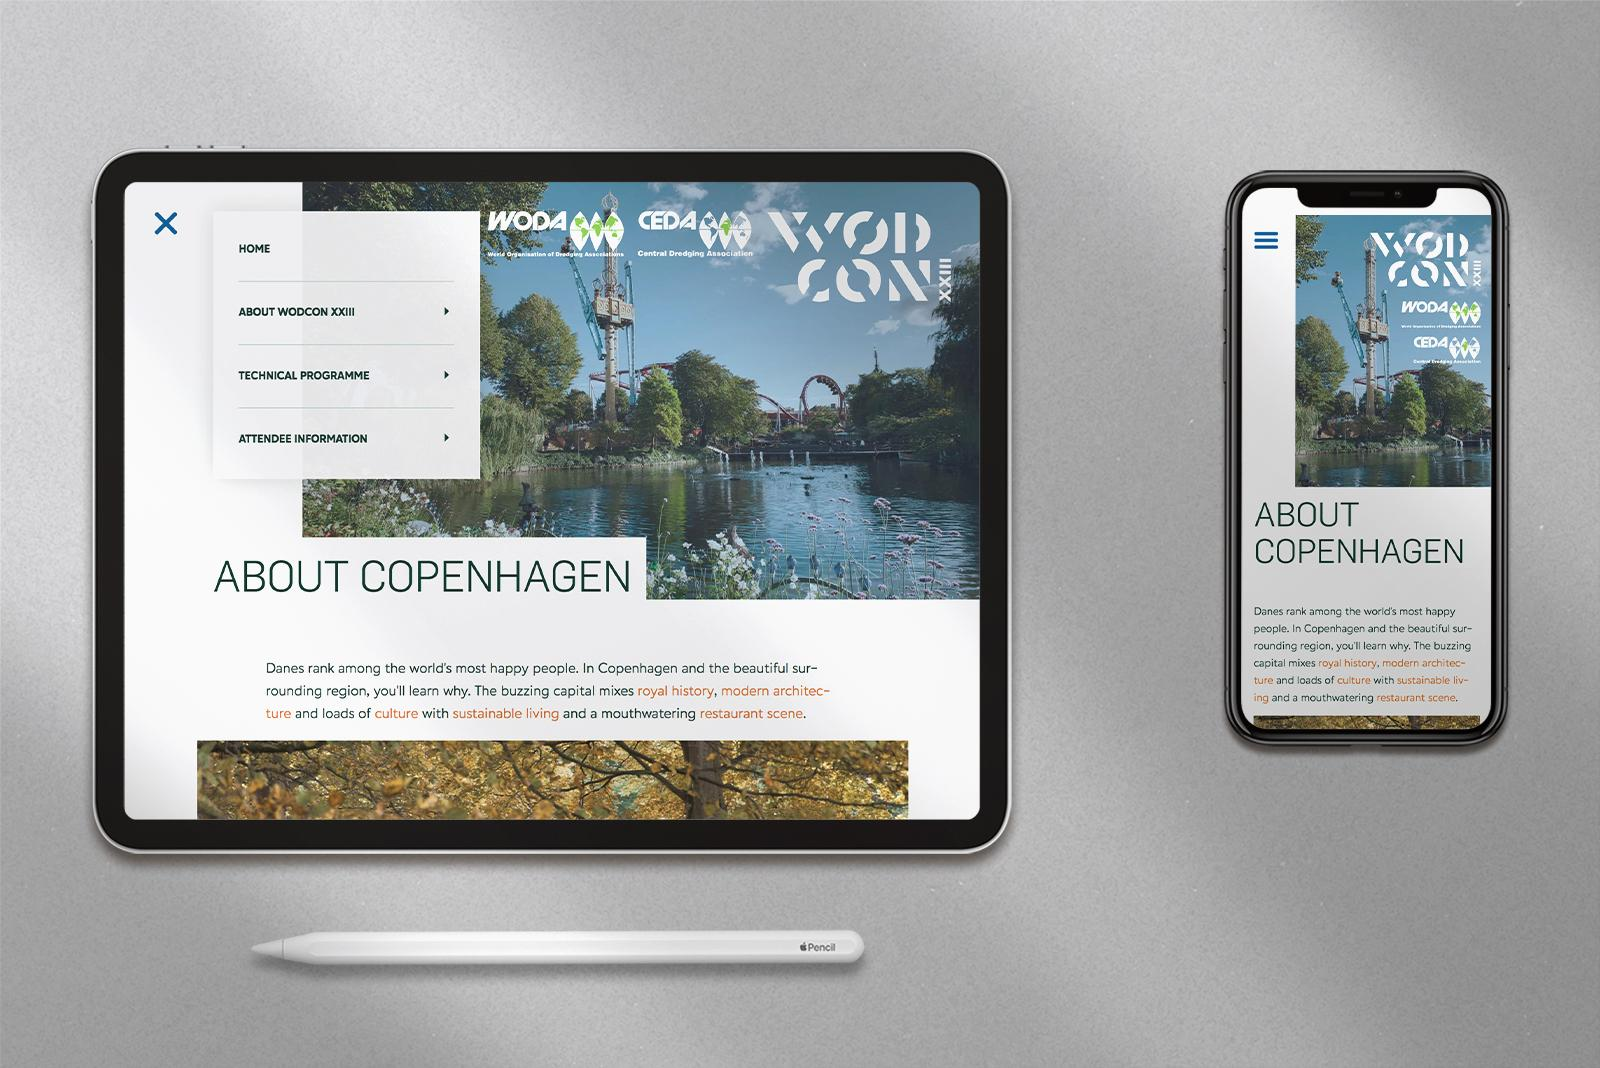 WODCON XXIII conference website shown on iPhone and a iPad Pro. 10.5 inch